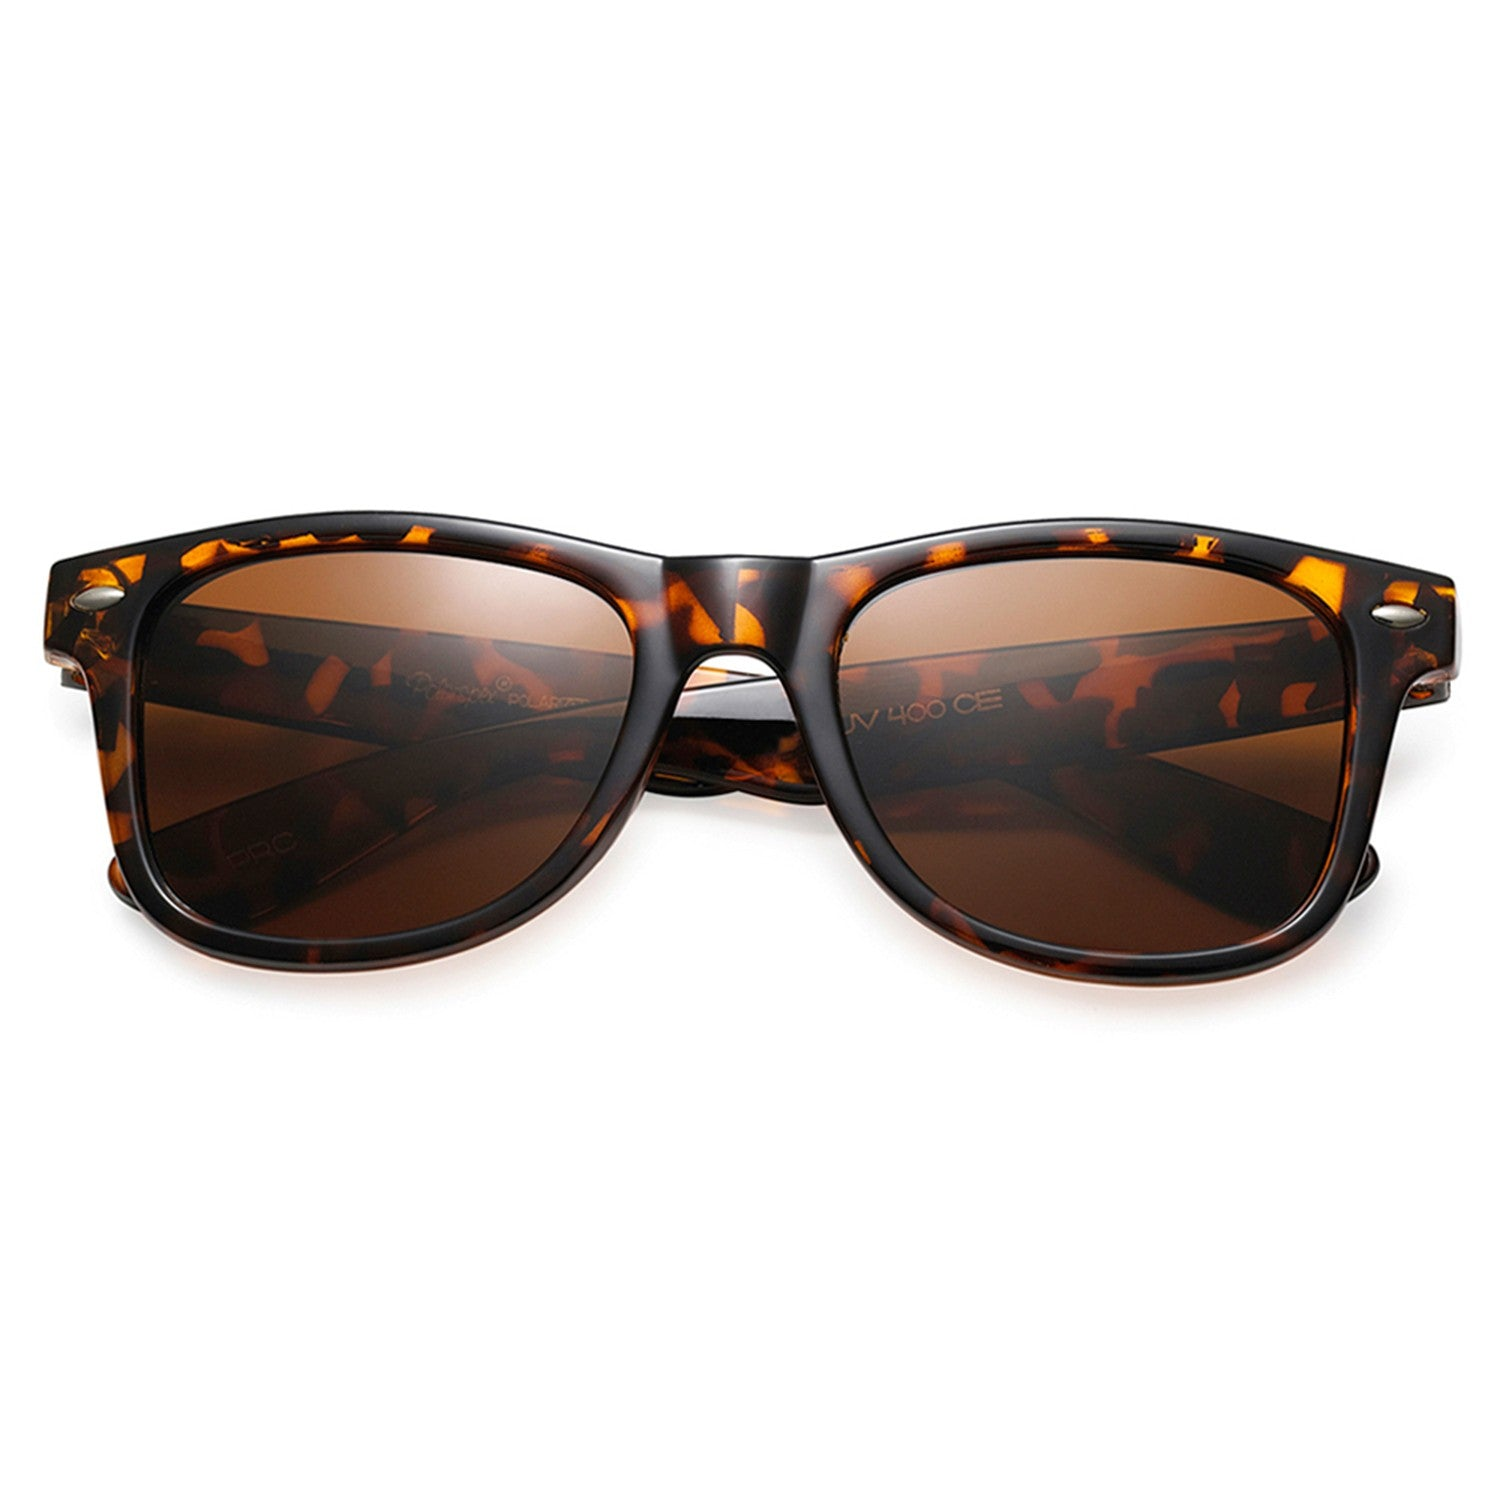 Polarspex Polarized 80's Retro Style Kids Sunglasses with Honey Tortoise Frames and Polarized Brown Lenses for Boys and Girls